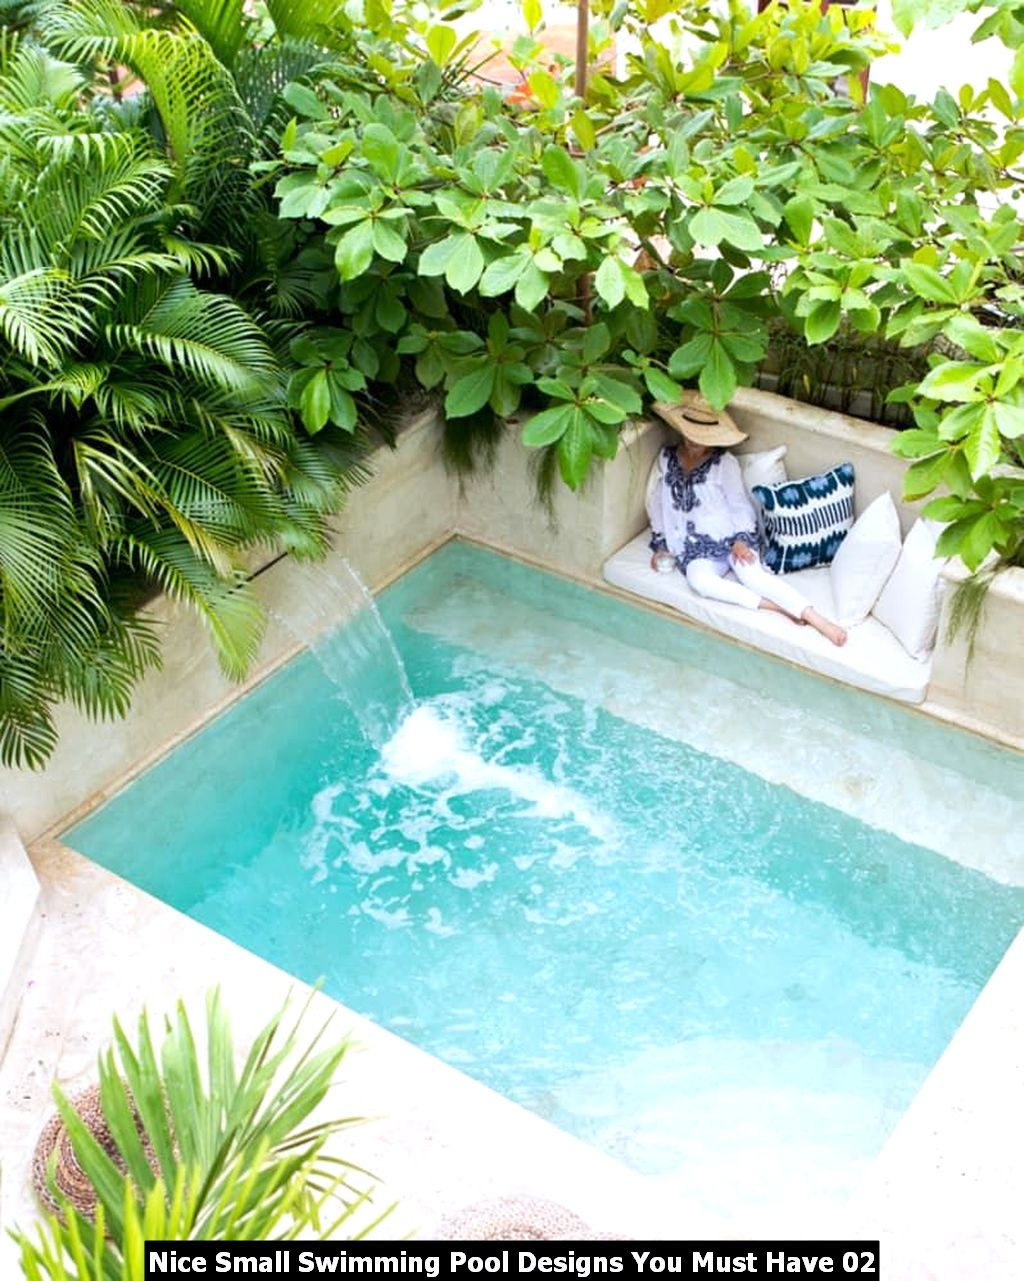 Nice Small Swimming Pool Designs You Must Have 02